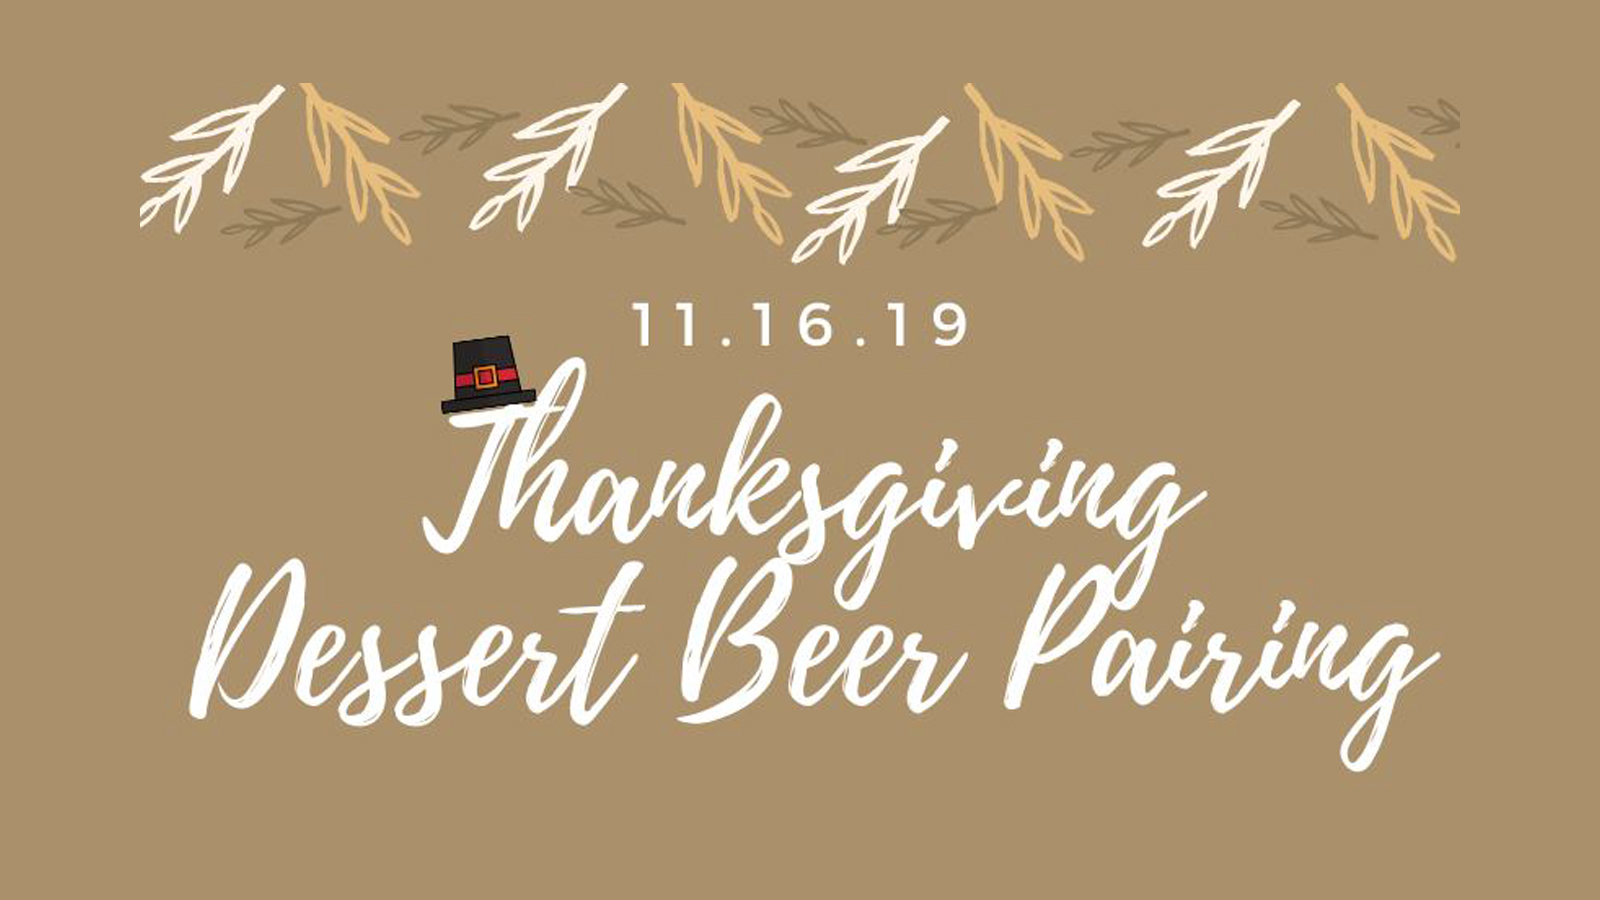 Thanksgiving Dessert Beer Pairing